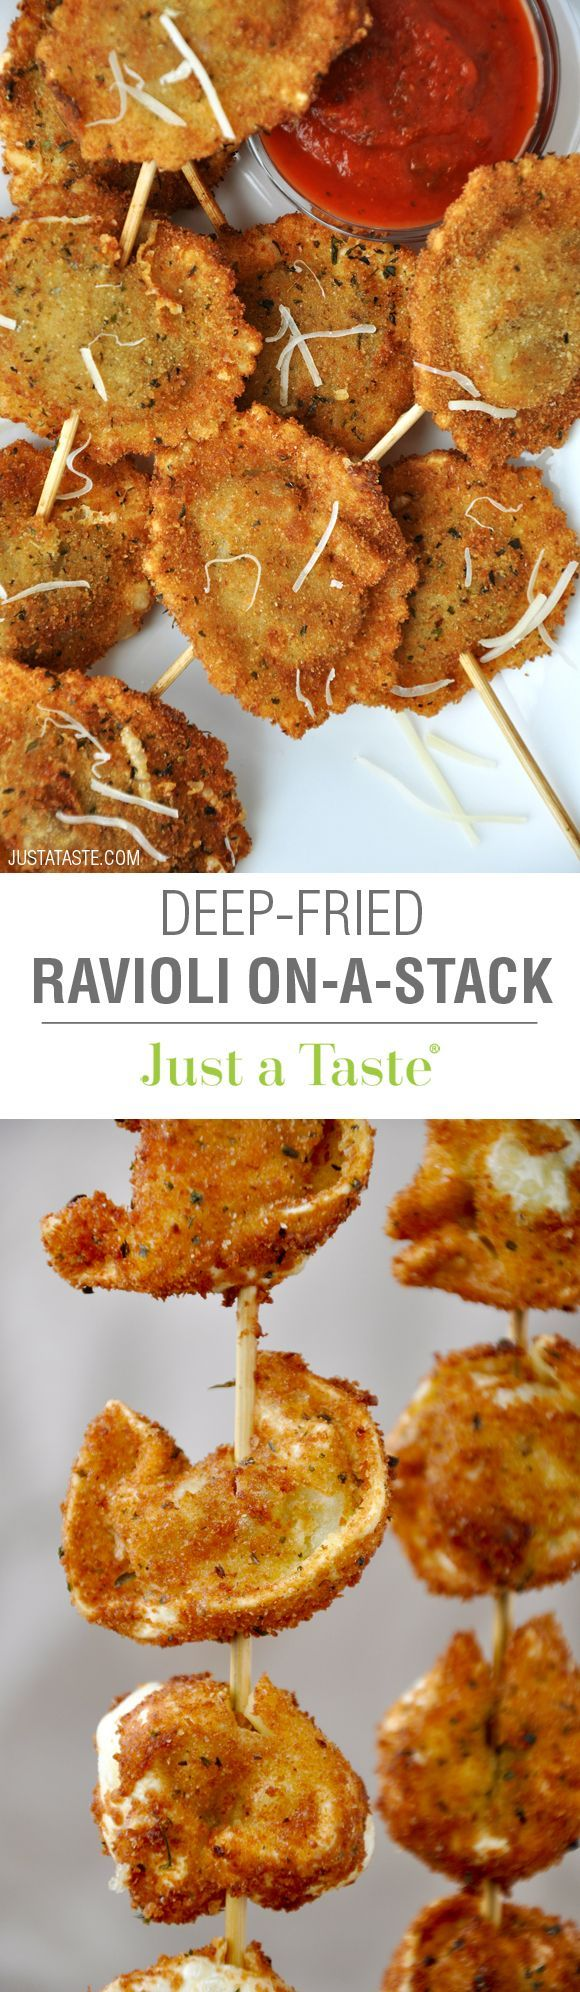 Deep-Fried Ravioli On-a-Stick #recipe via